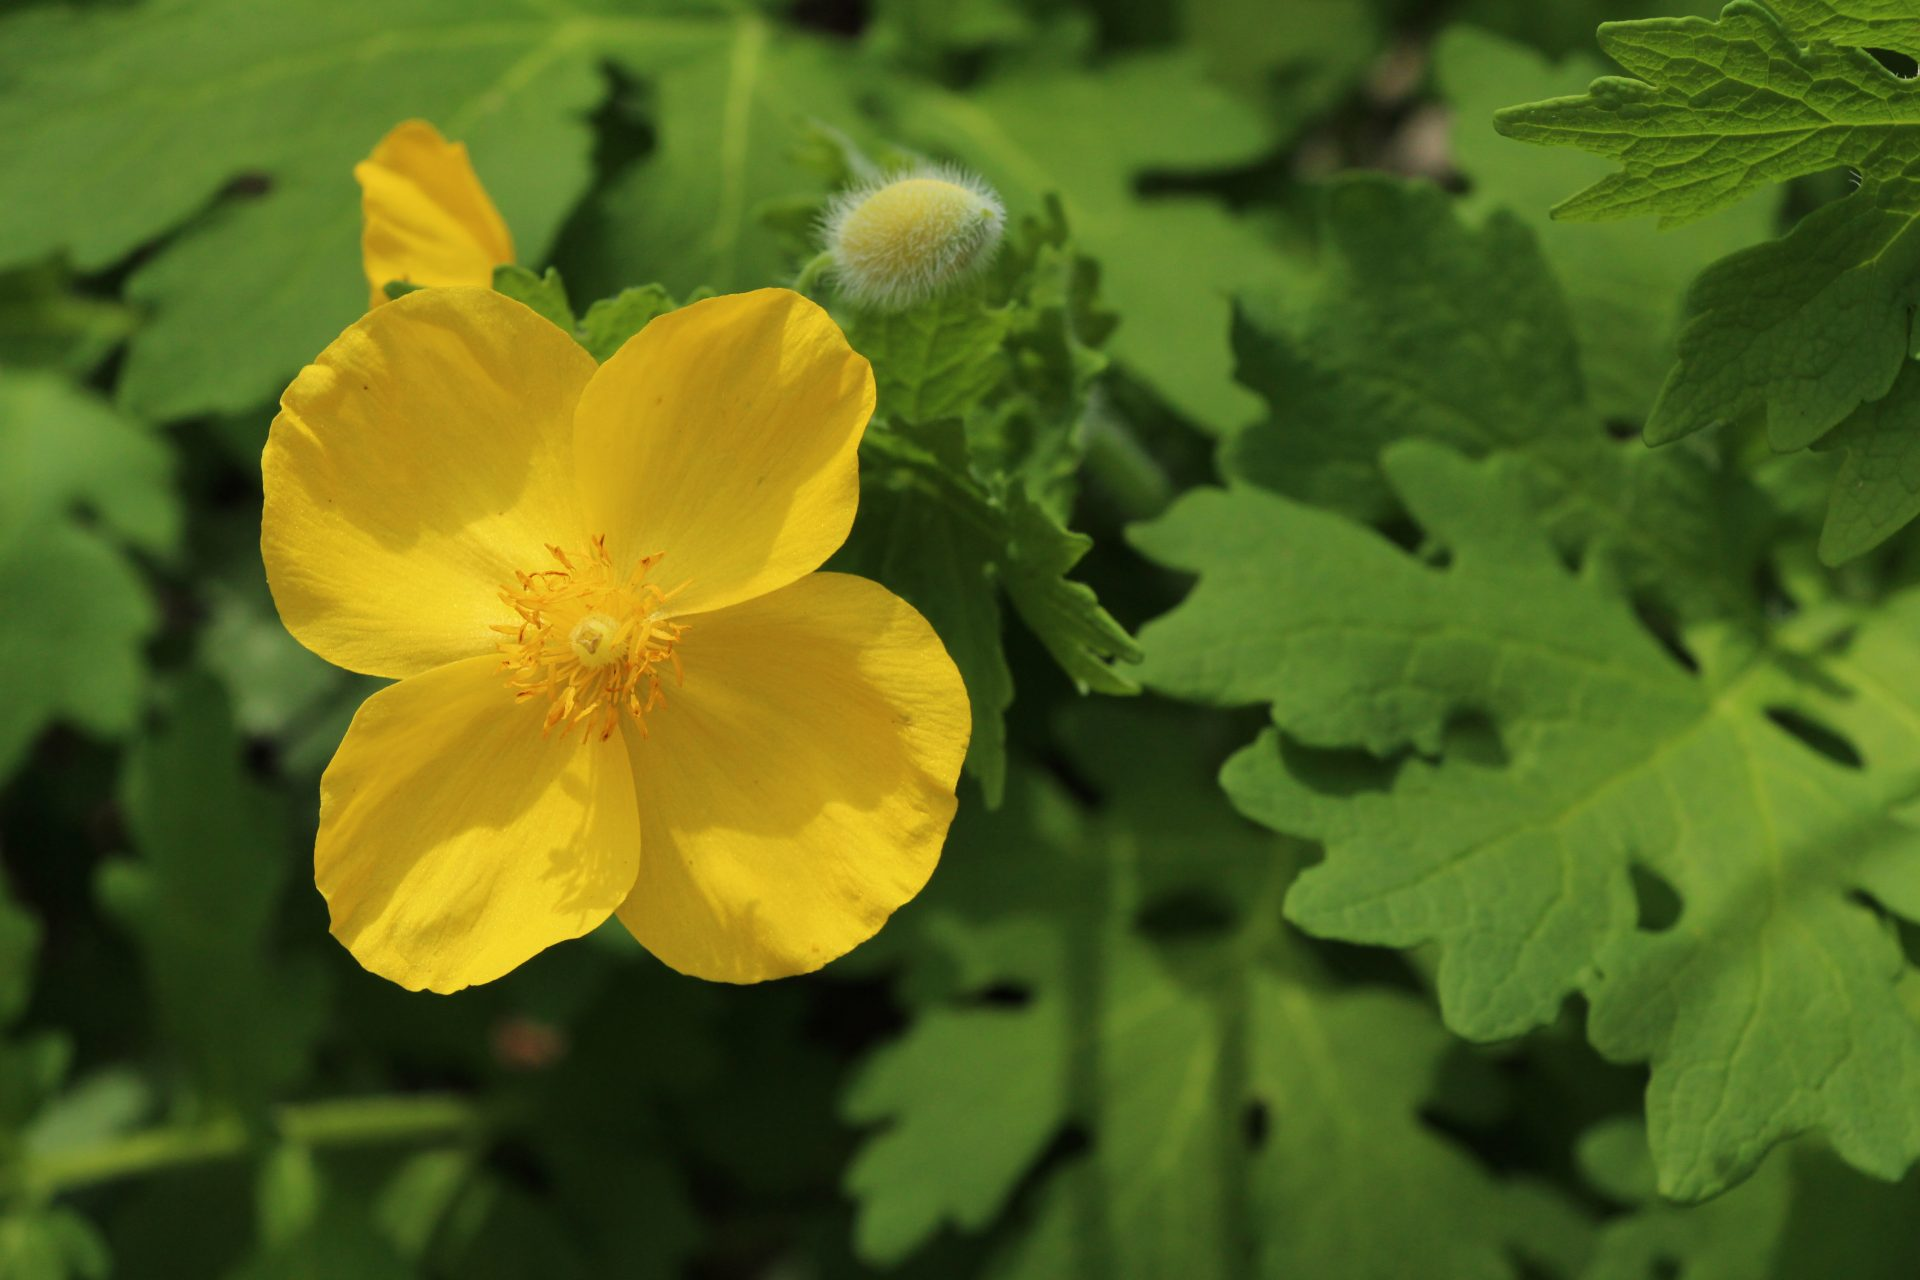 Celandine poppy are among the many woodland flowers that bloom in spring at Pride of Ohio Prairie.